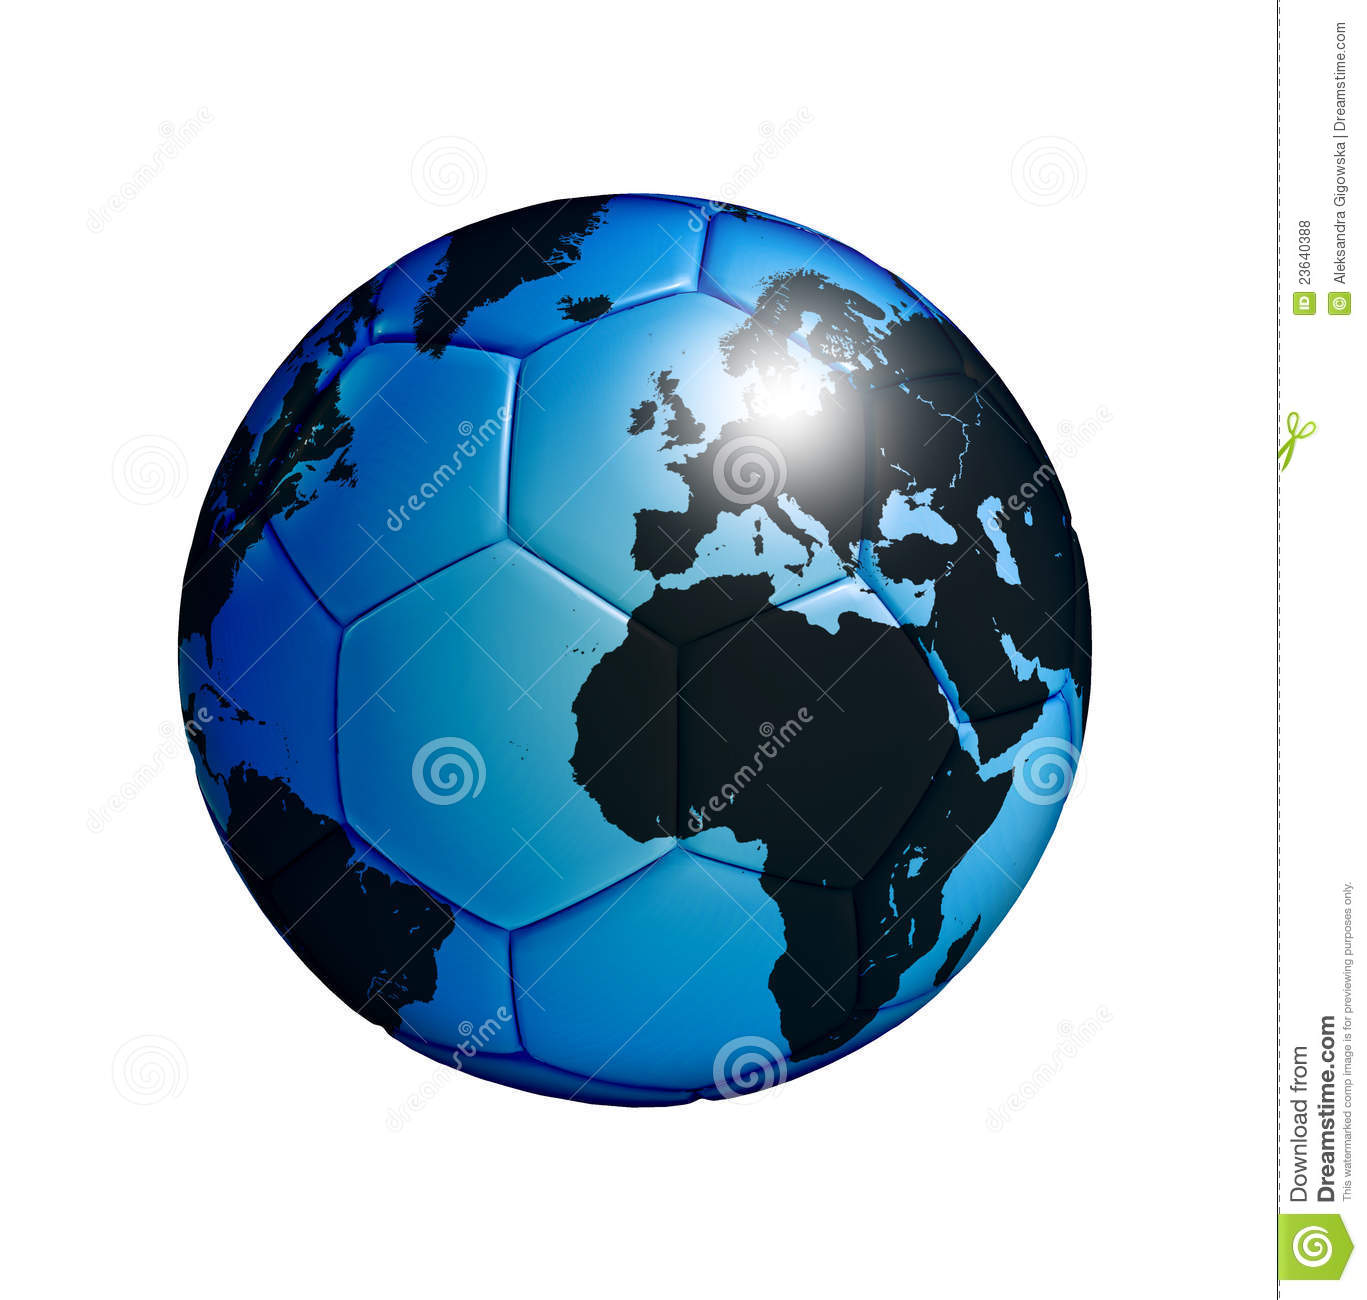 For World Soccer Shop we currently have 0 coupons and 0 deals. Our users can save with our coupons on average about $ Todays best offer is. If you can't find a coupon or a deal for you product then sign up for alerts and you will get updates on every new coupon added for World Soccer Shop.